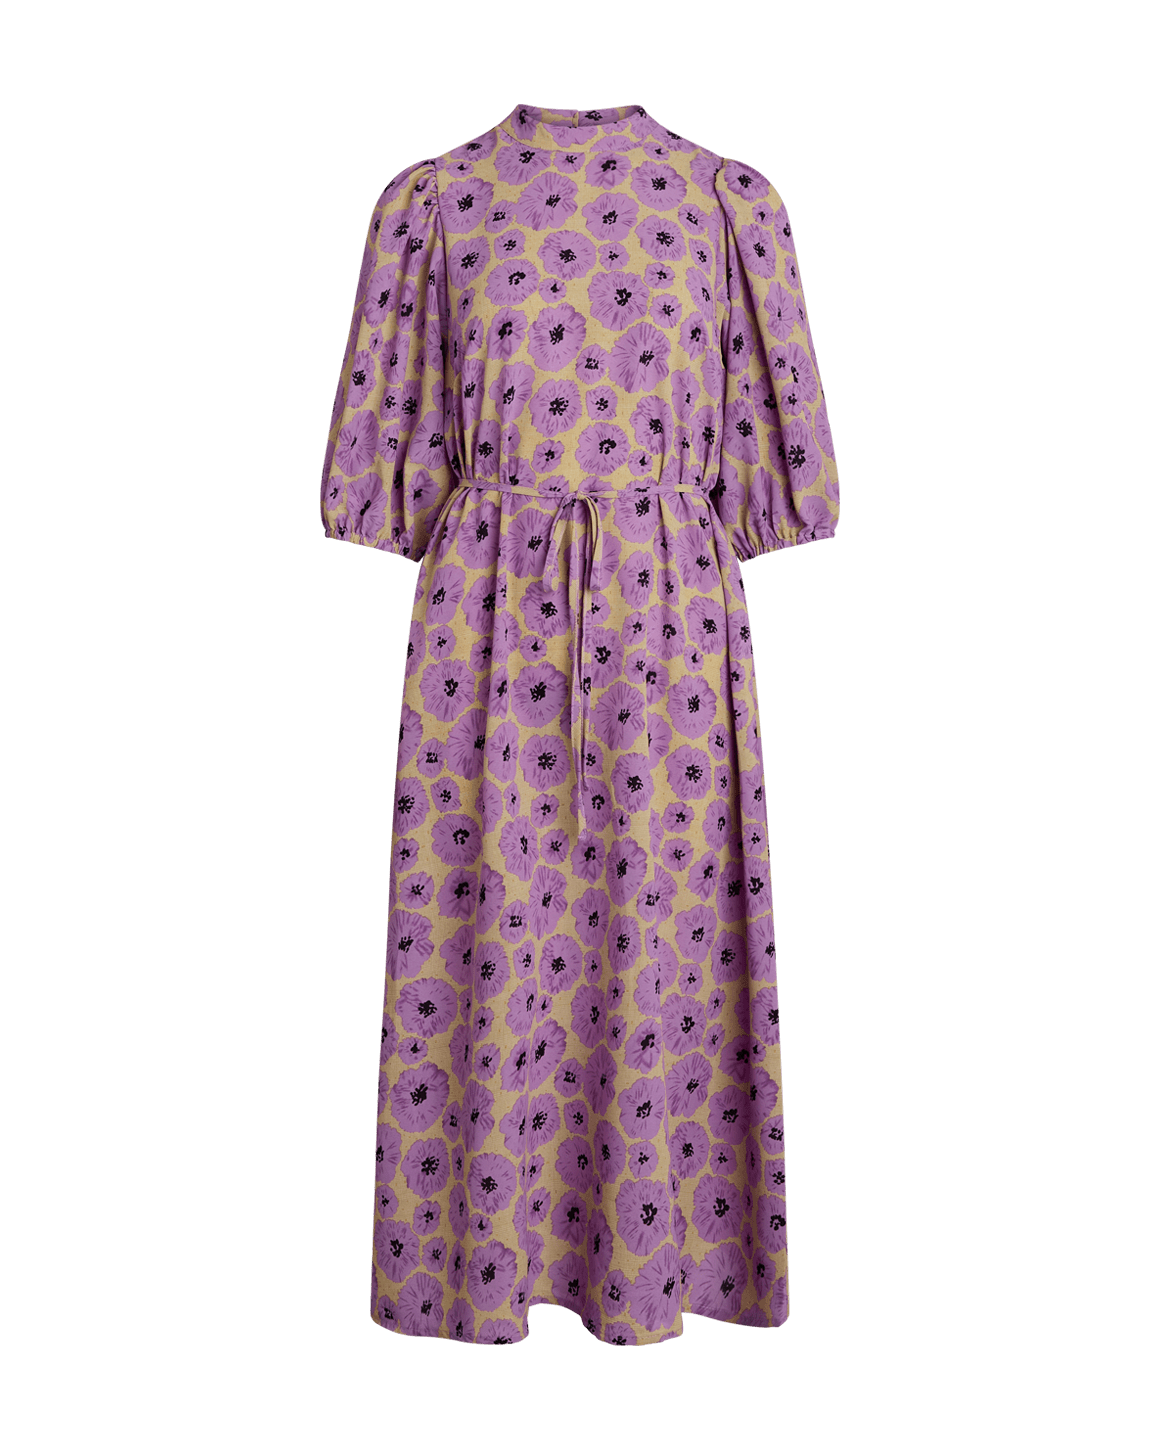 SisterS Point Ventia dress